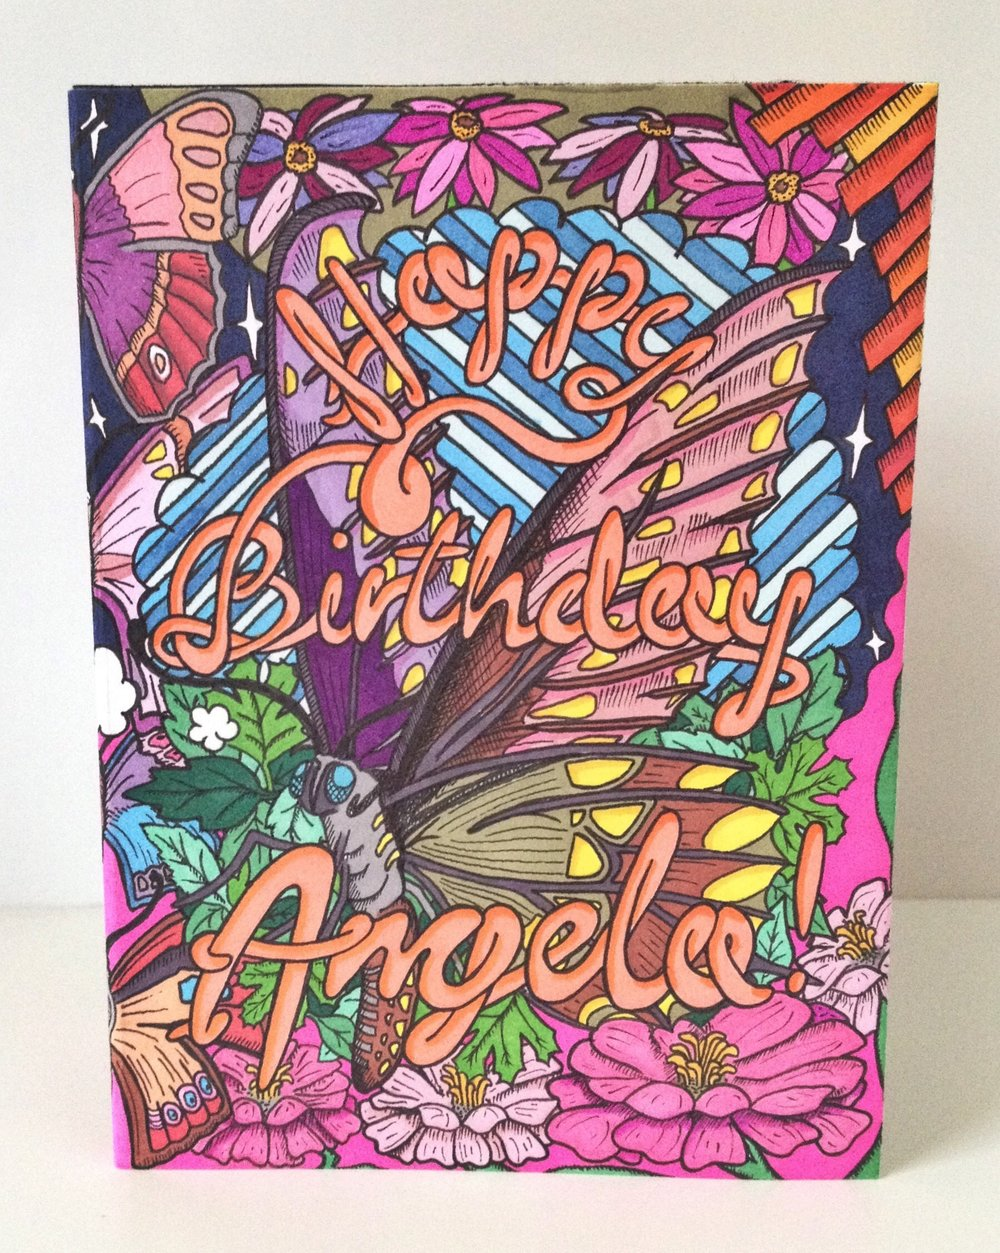 Angela's birthday card (1 of 3)